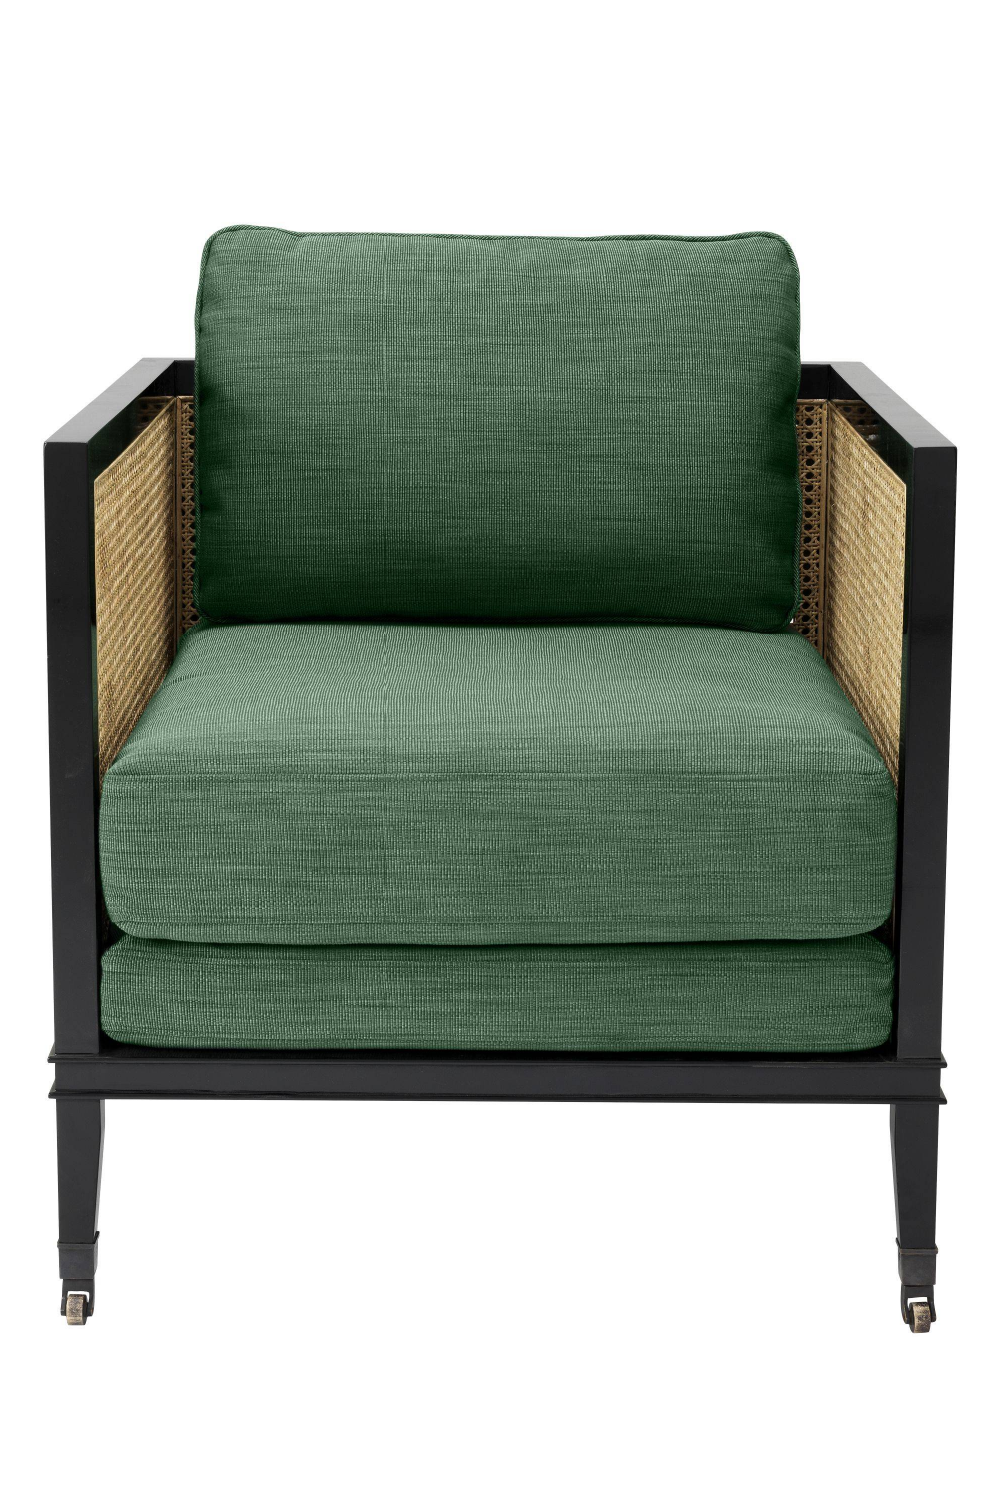 Green Upholstered Caned Armchair | Eichholtz Lauriston